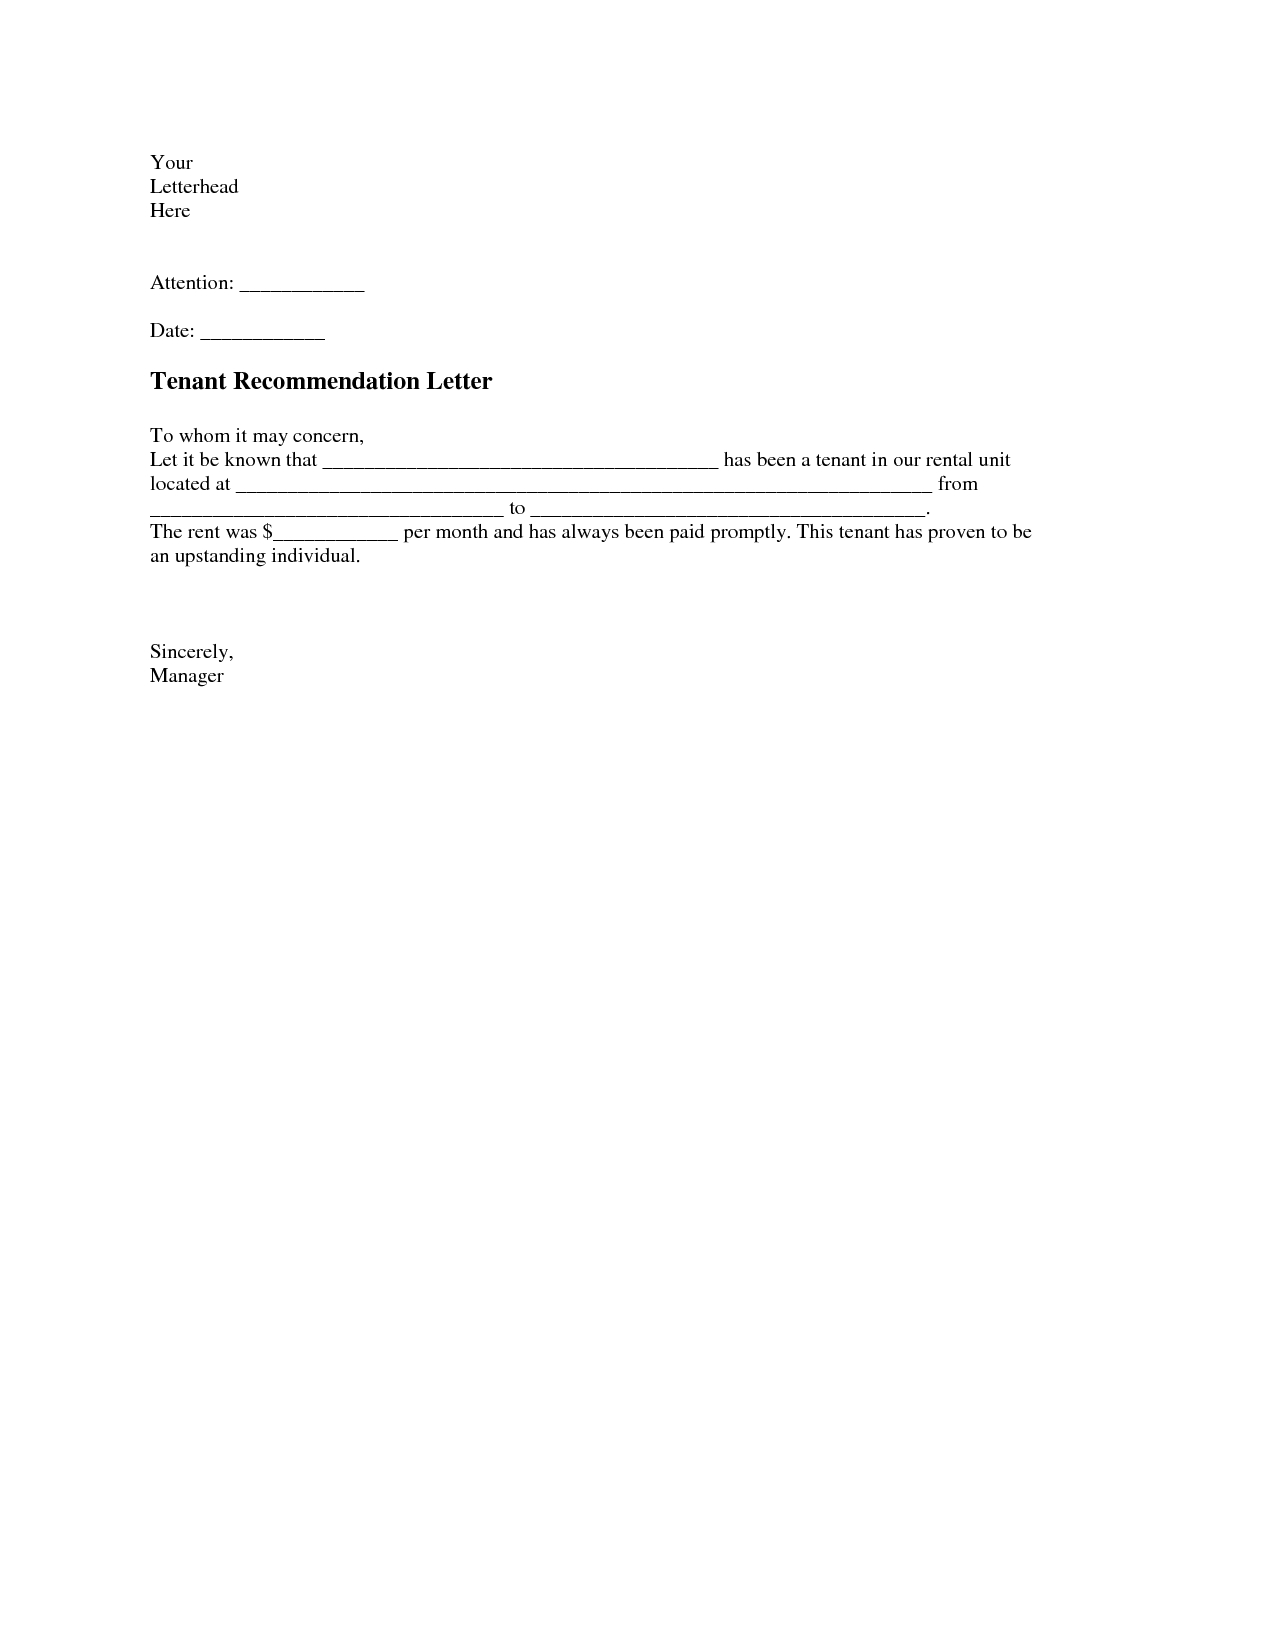 Housing Reference Letter Template - Tenant Re Mendation Letter A Tenant Re Mendation Letter is